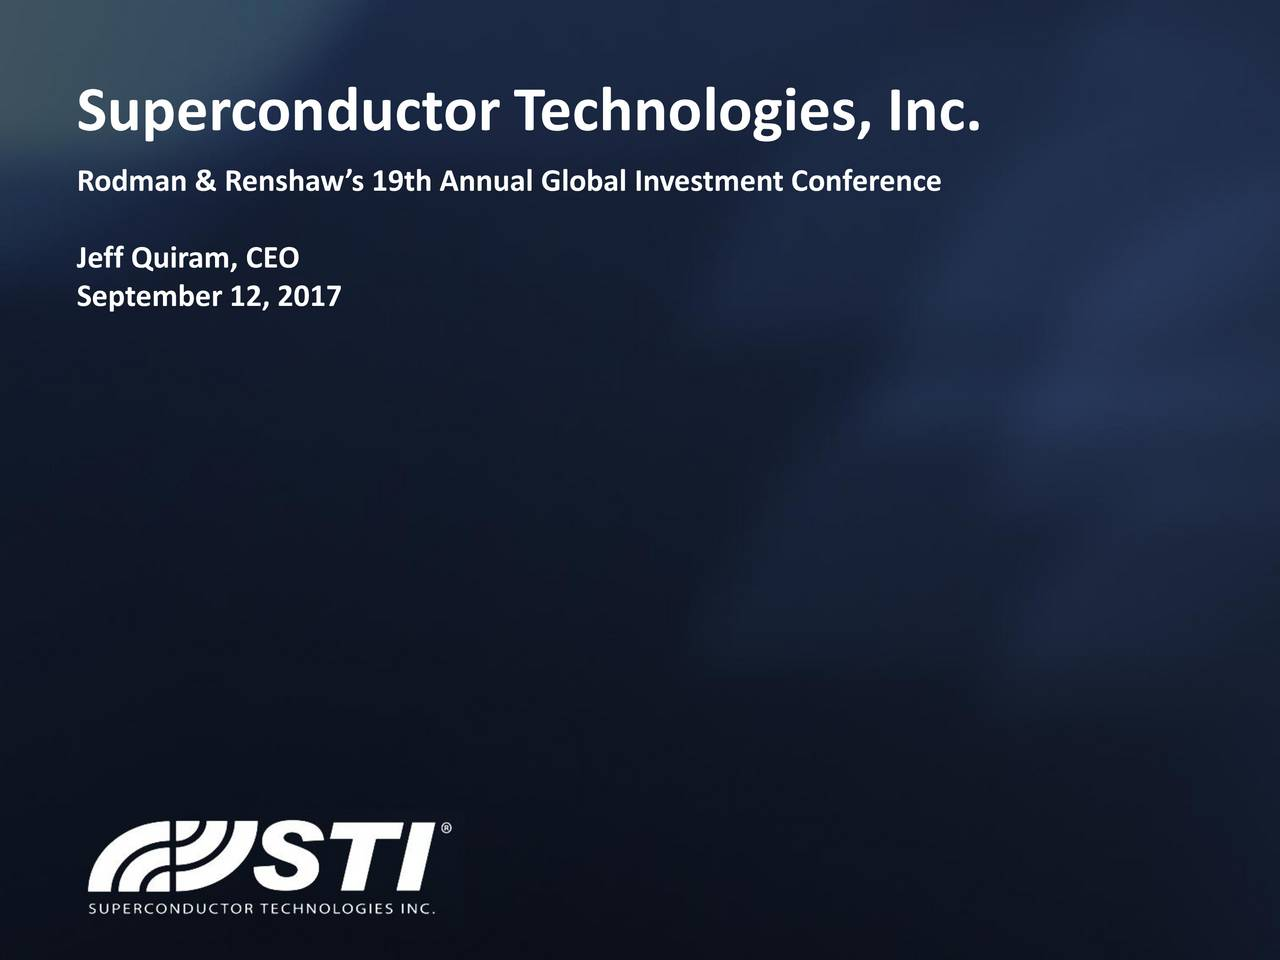 superconductor technologies inc Superconductor technologies inc, headquartered in austin, tx, has been a  world leader in high temperature superconducting (hts) materials since 1987, .